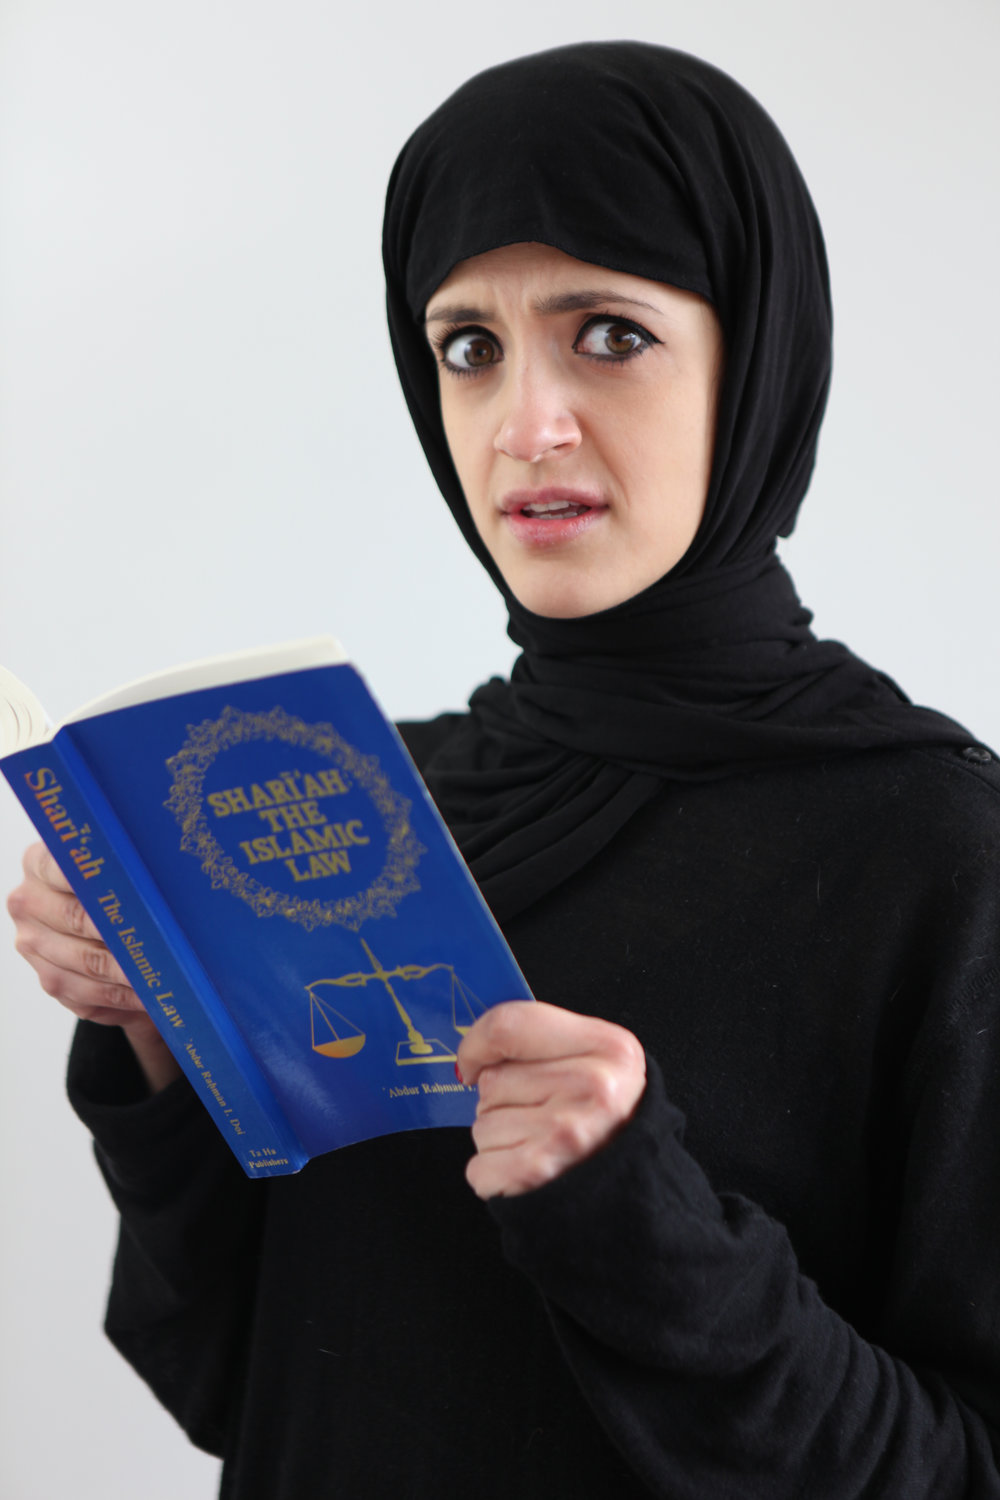 Sarah Maple, Sharia Law The Second